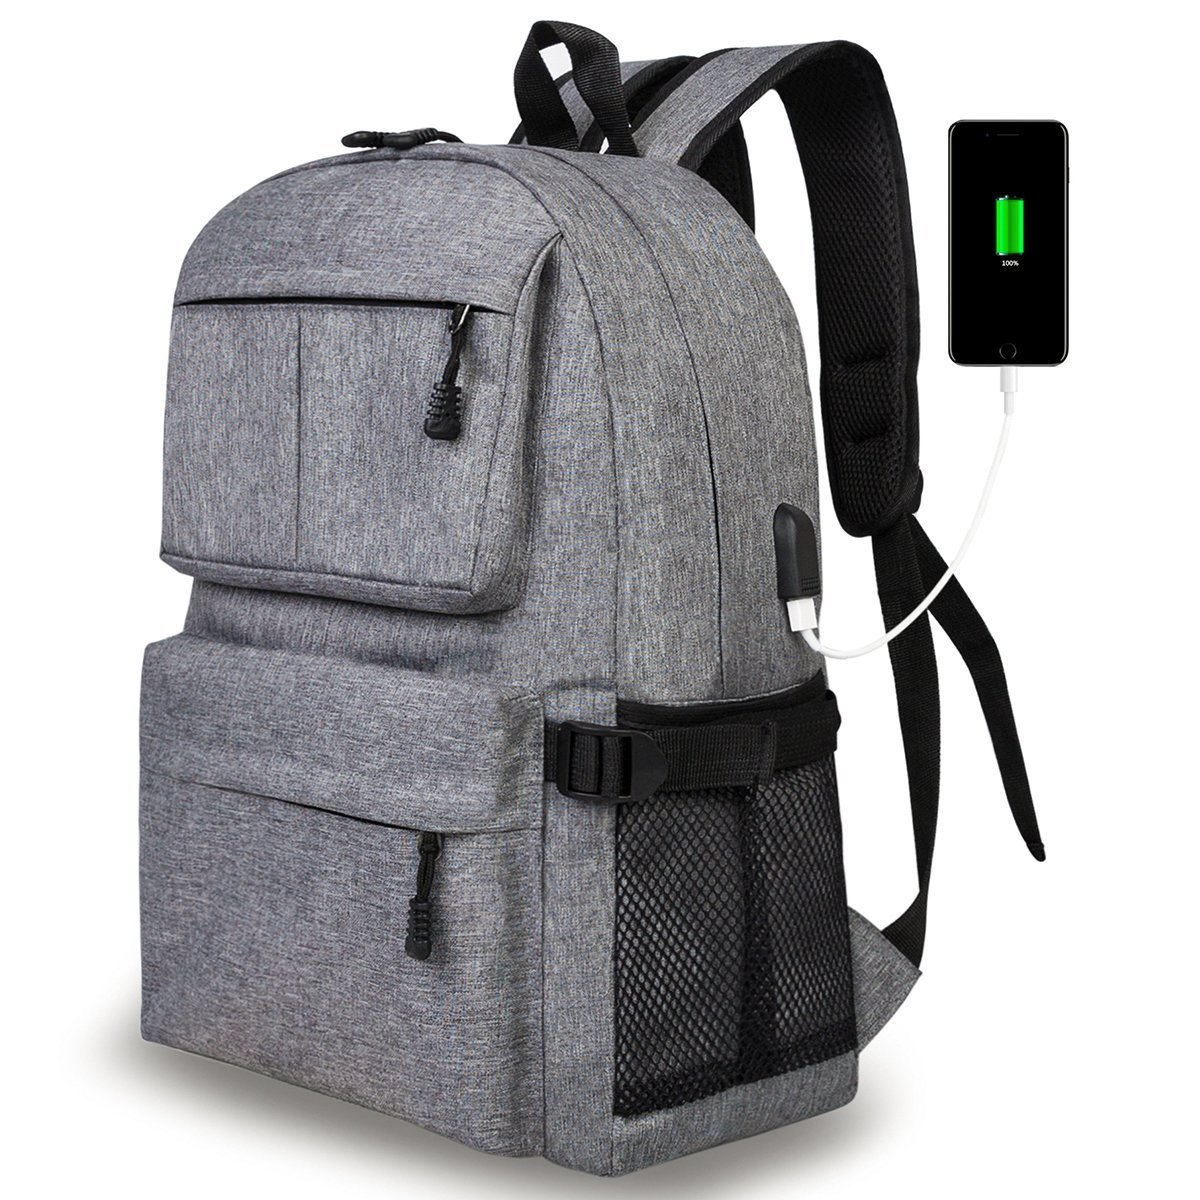 7afb853f2839 ... Bag Daypack College School BookBag for Girls and Boys Fits 15.6 In  Laptop (gray). best Casual Laptop Backpack with USB Charging Port